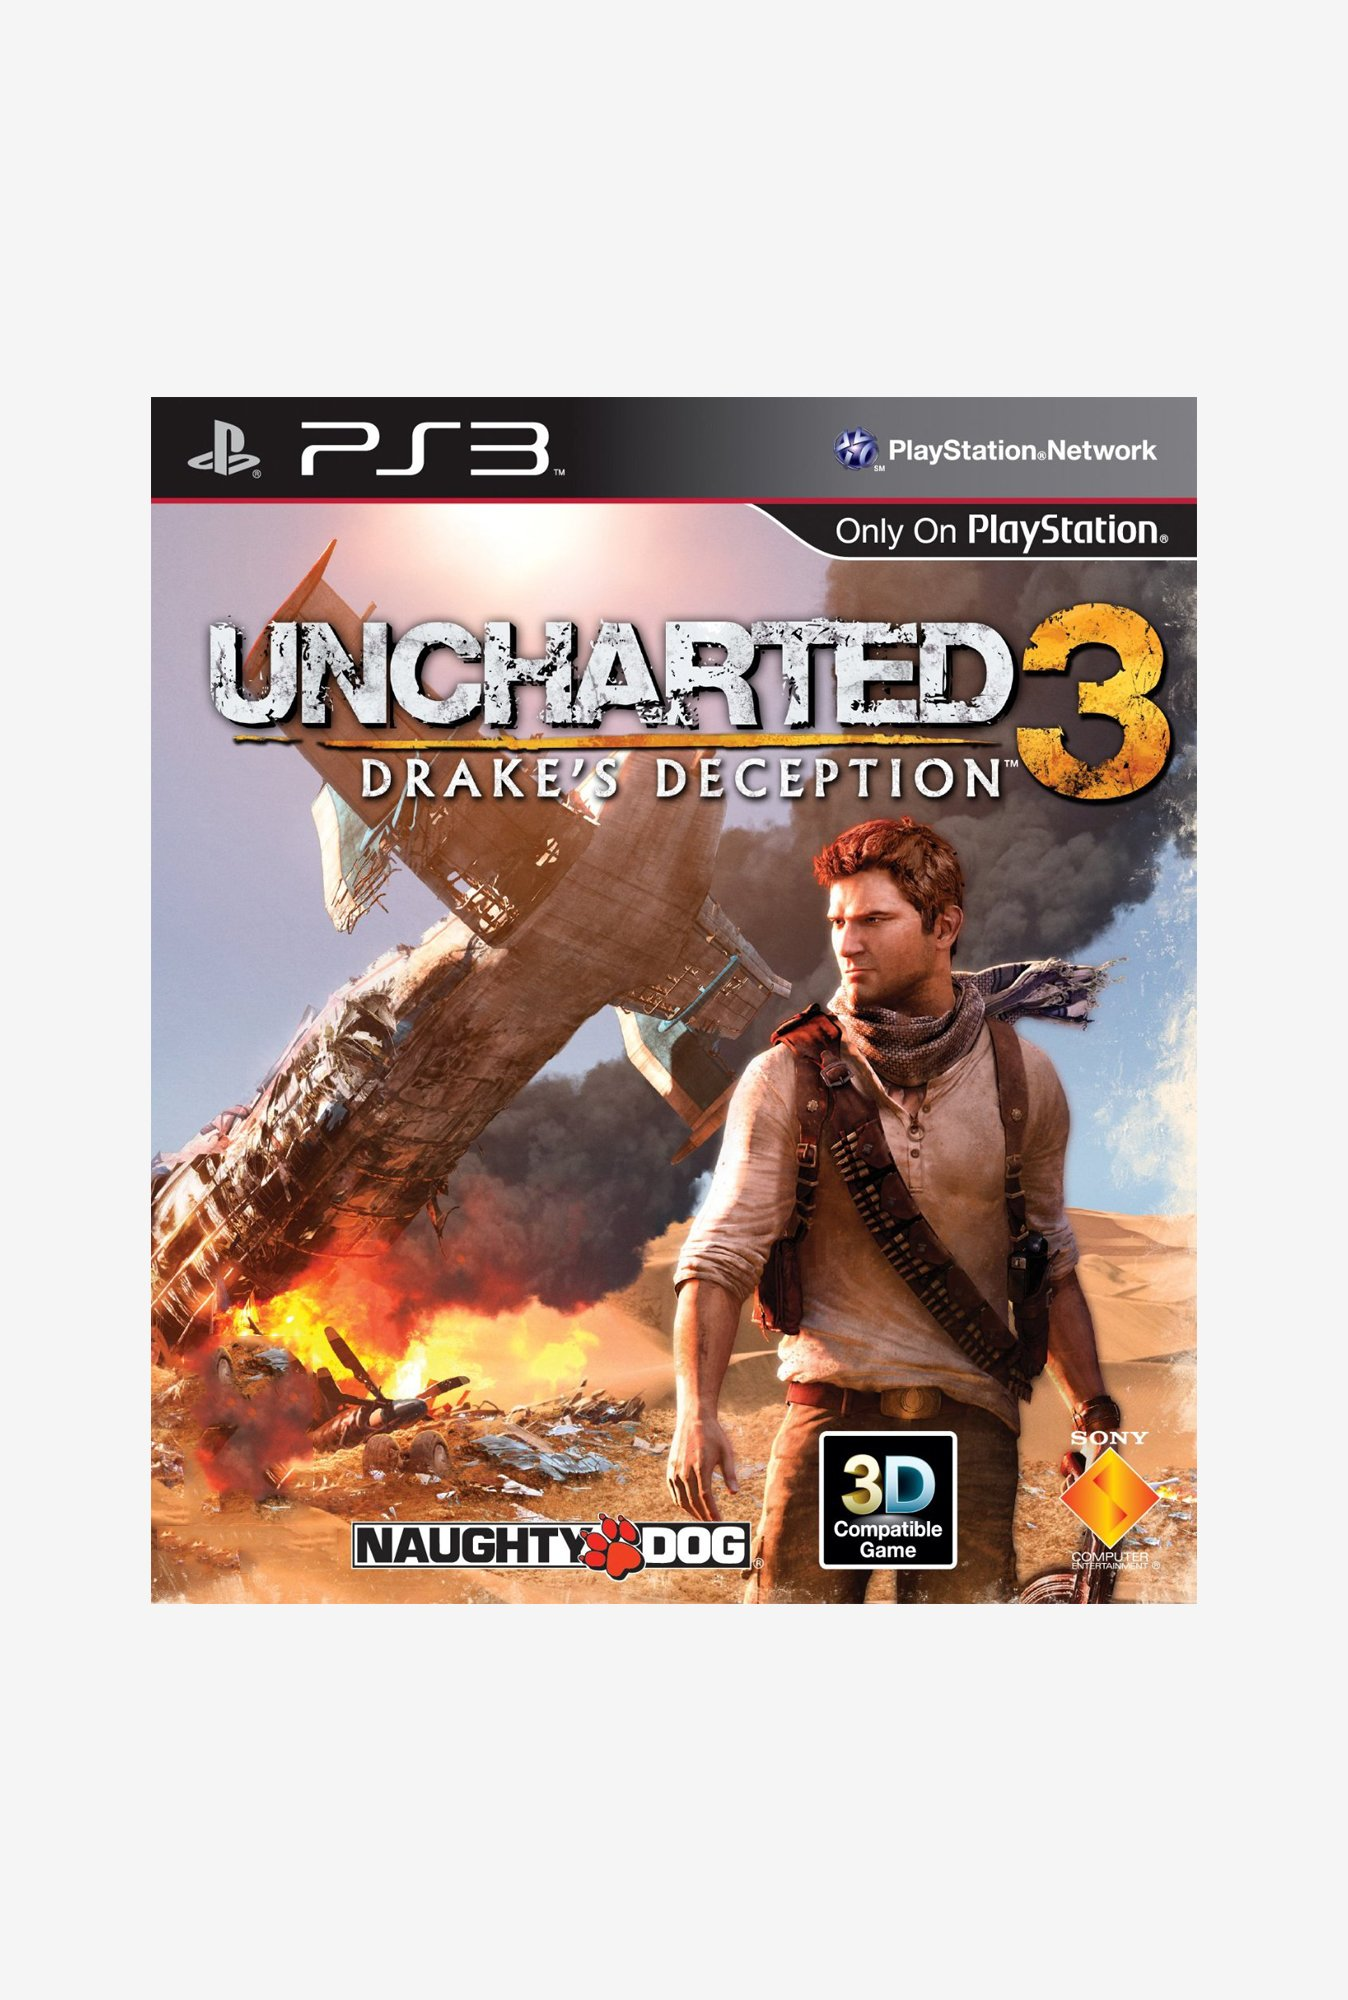 PS3 Uncharted 3: Drake's Deception Game